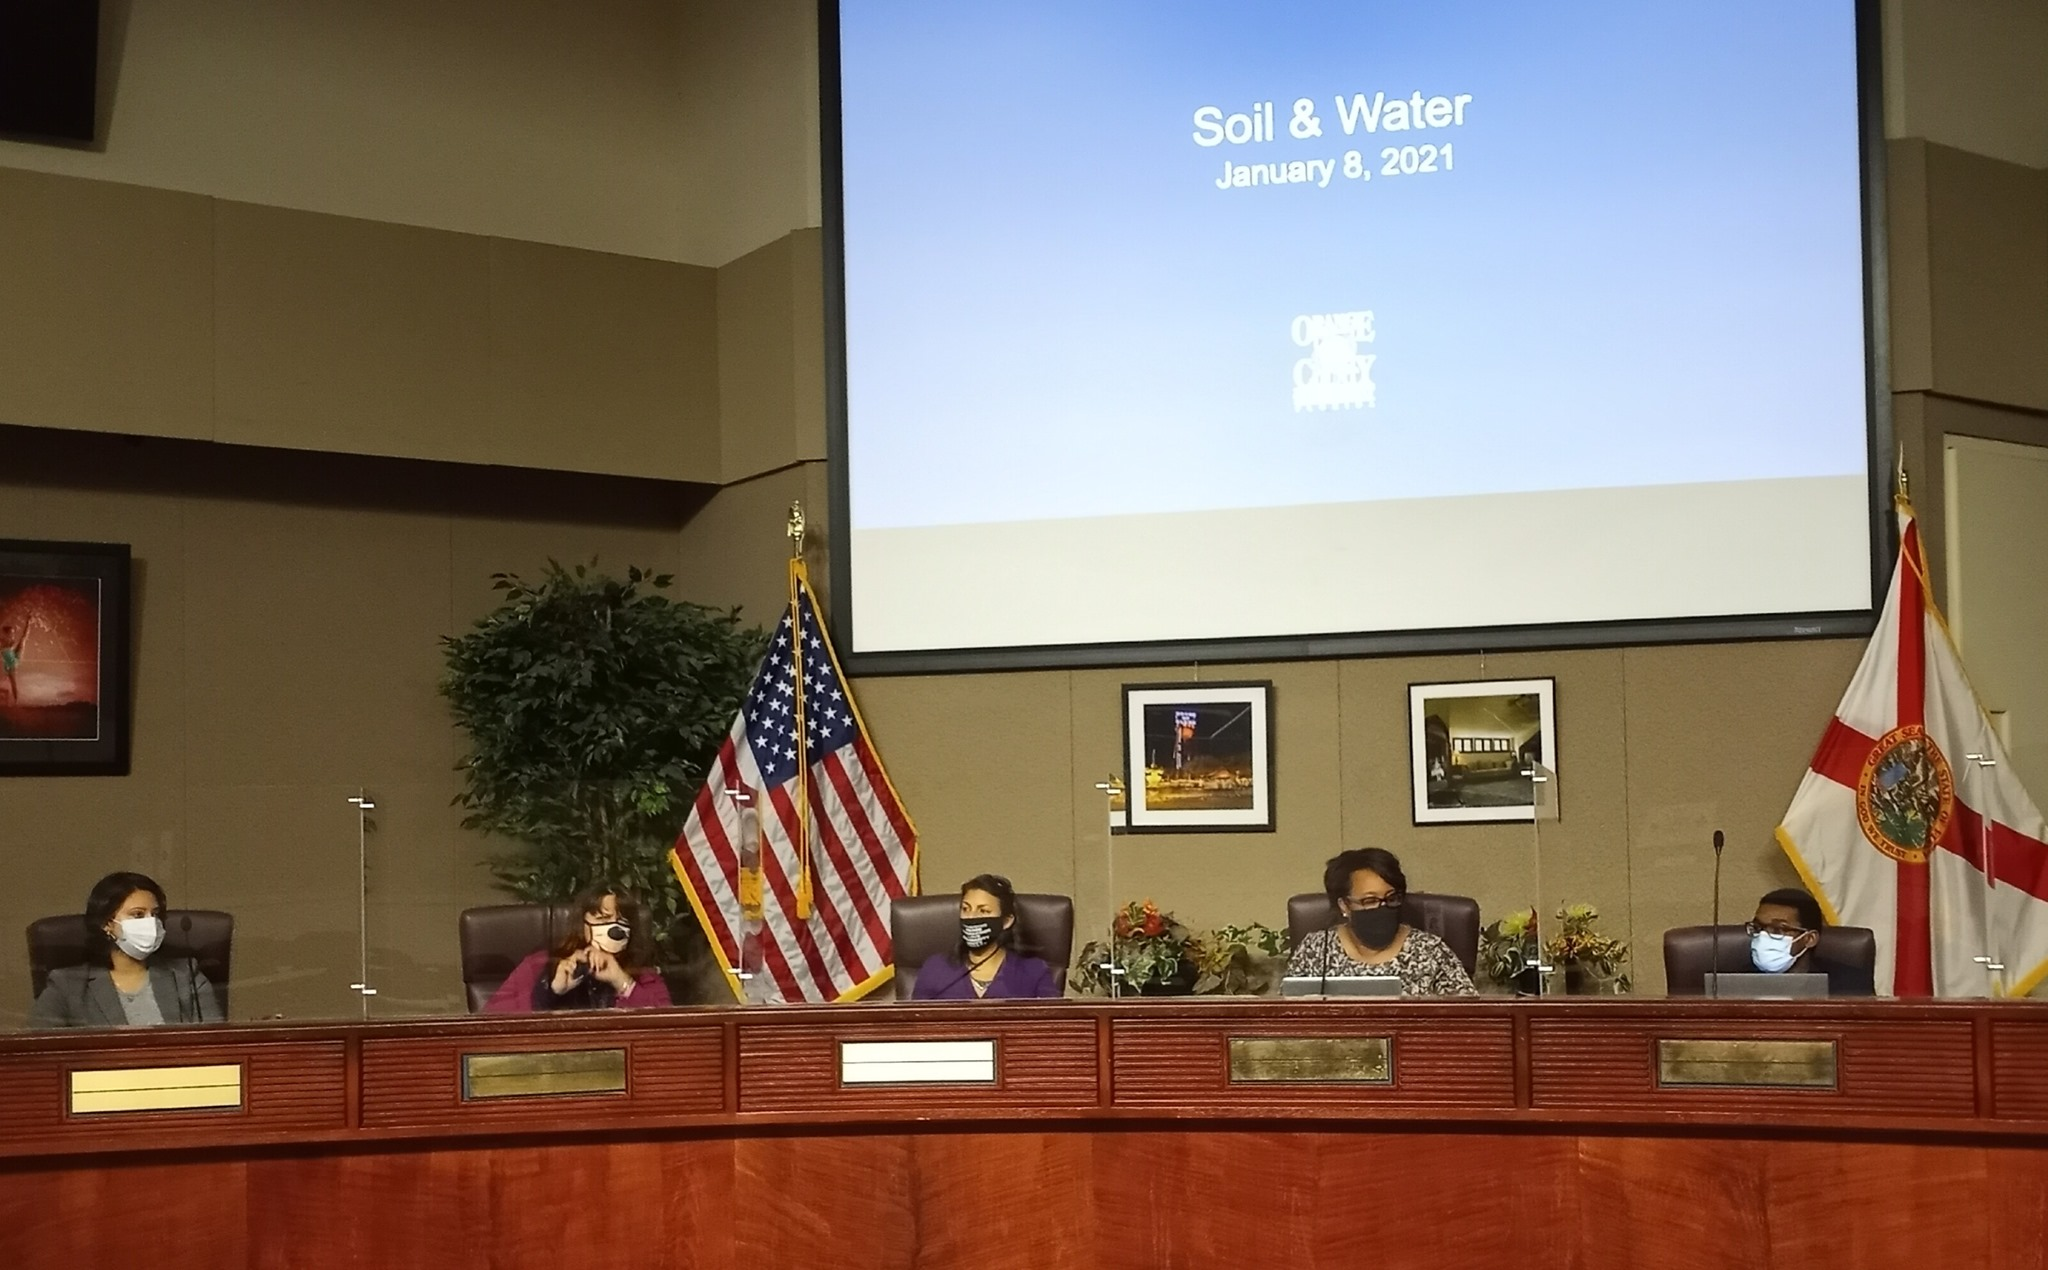 The newly sworn in Orange Soil and Water Conservation District Board held its first meeting Friday, January 8, 2021. (l-r): Supervisor Raquel Lozano (Seat 3), Supervisor Karolun Campbell (Seat 2), Supervisor Alaina Slife (Seat 5), incumbent Supervisor Dawn Curtis (Seat 4) and Supervisor Nathaniel Douglas (Seat 1). Photo: Willie David/Florida National News.